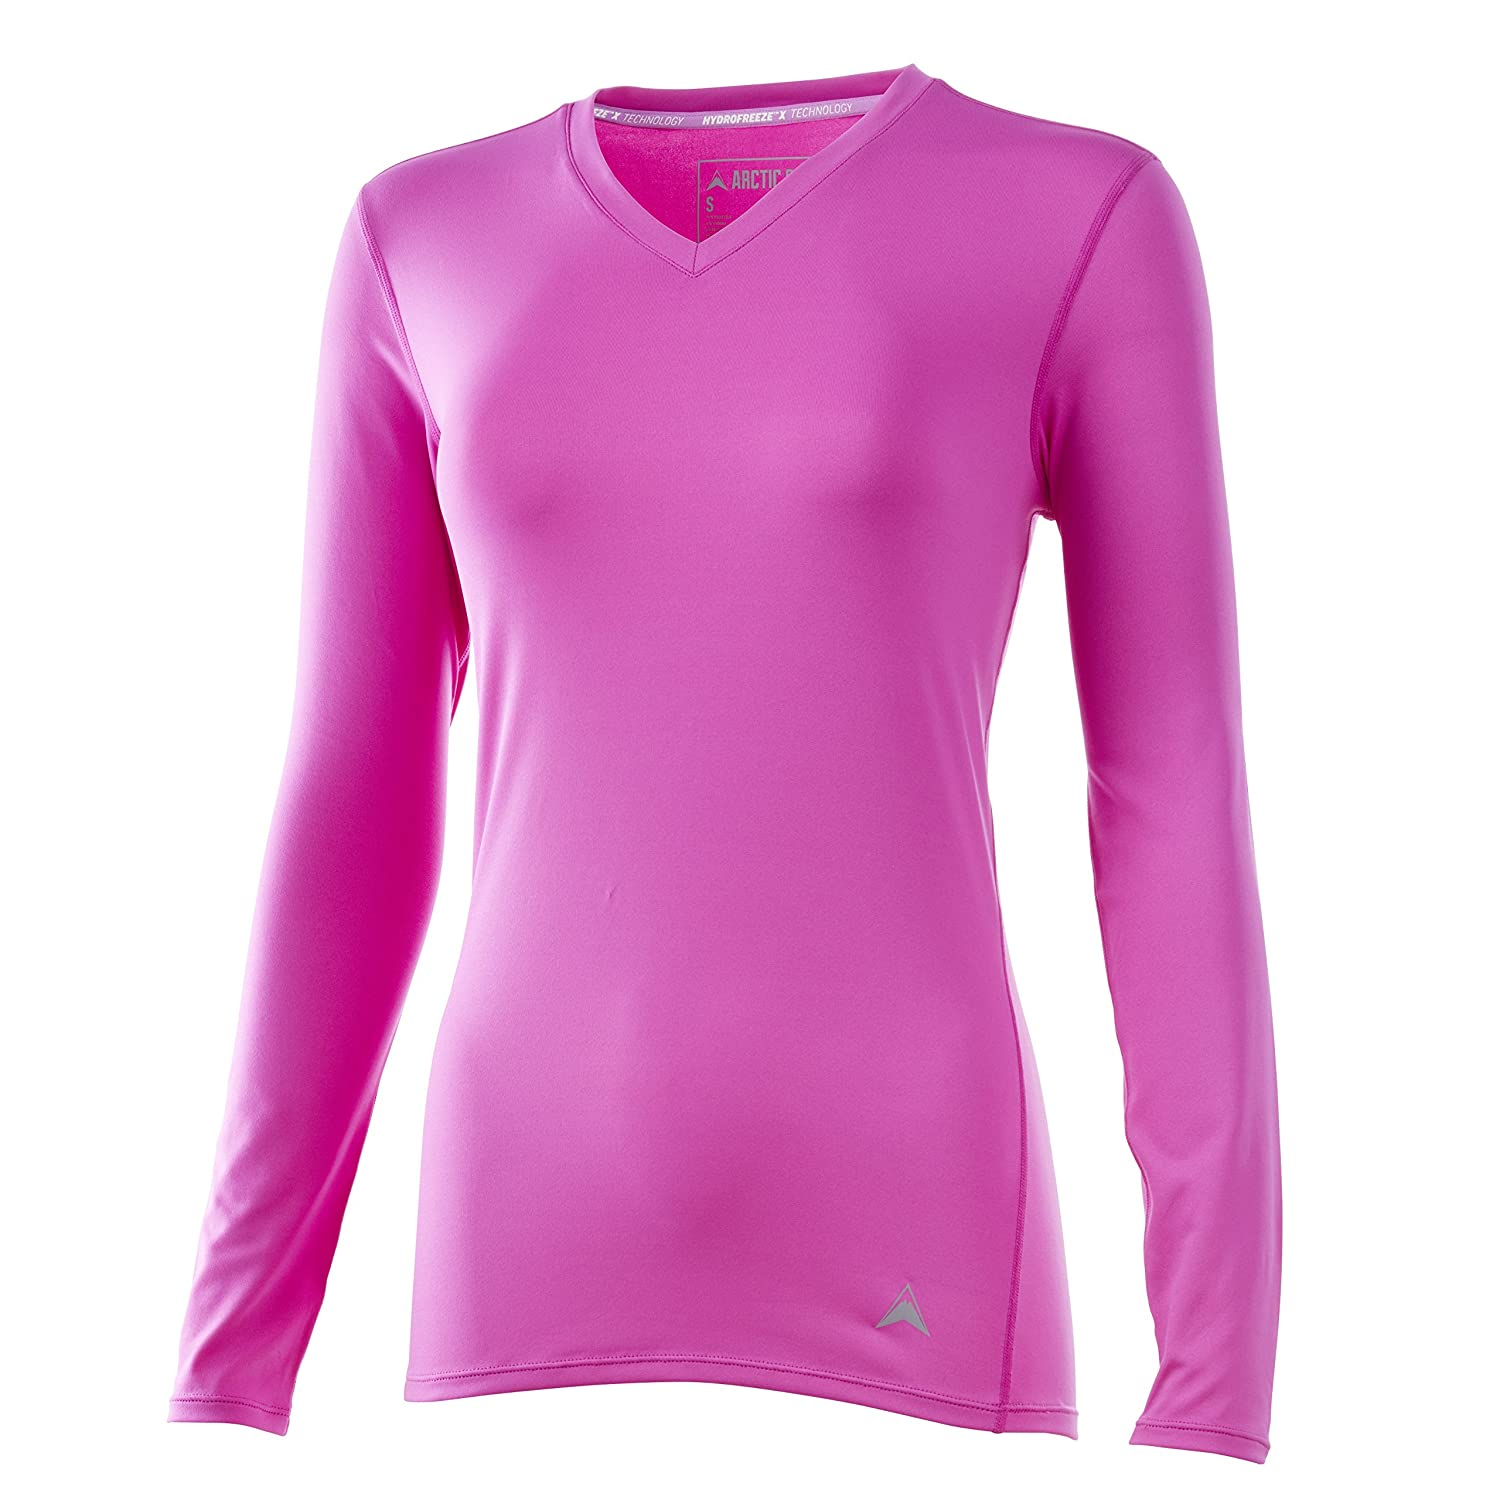 109184ab Arctic Cool Women's Long Sleeve V-Neck Instant Cooling Shirt Performance  Breathable UPF 50+ Sun Protection Moisture Wicking Comfortable Quick Drying  Long ...